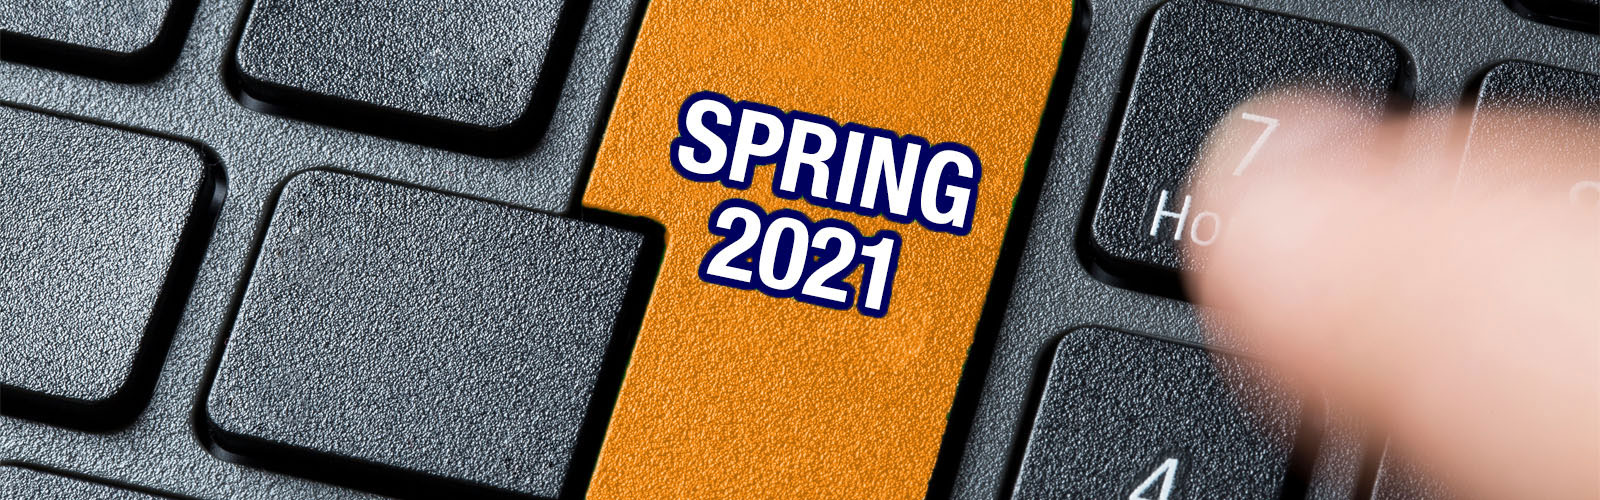 Spring 2021 printed on a keyboard button